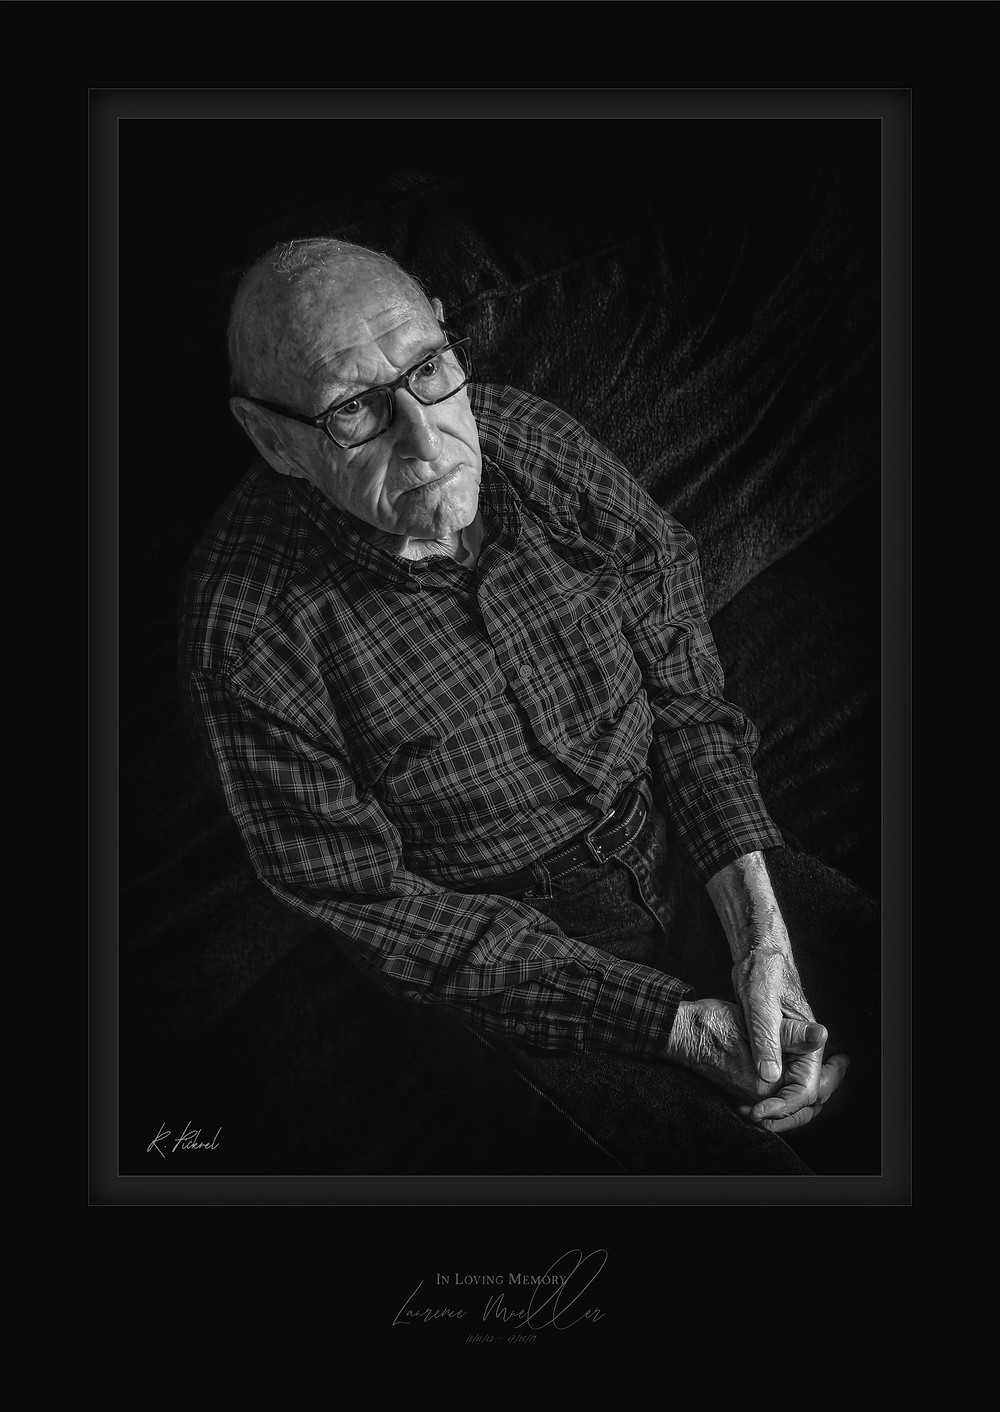 A black and white photo of an elderly man. The camera is slightly above him. His hands are folded in his lap and he looks off into the distance.